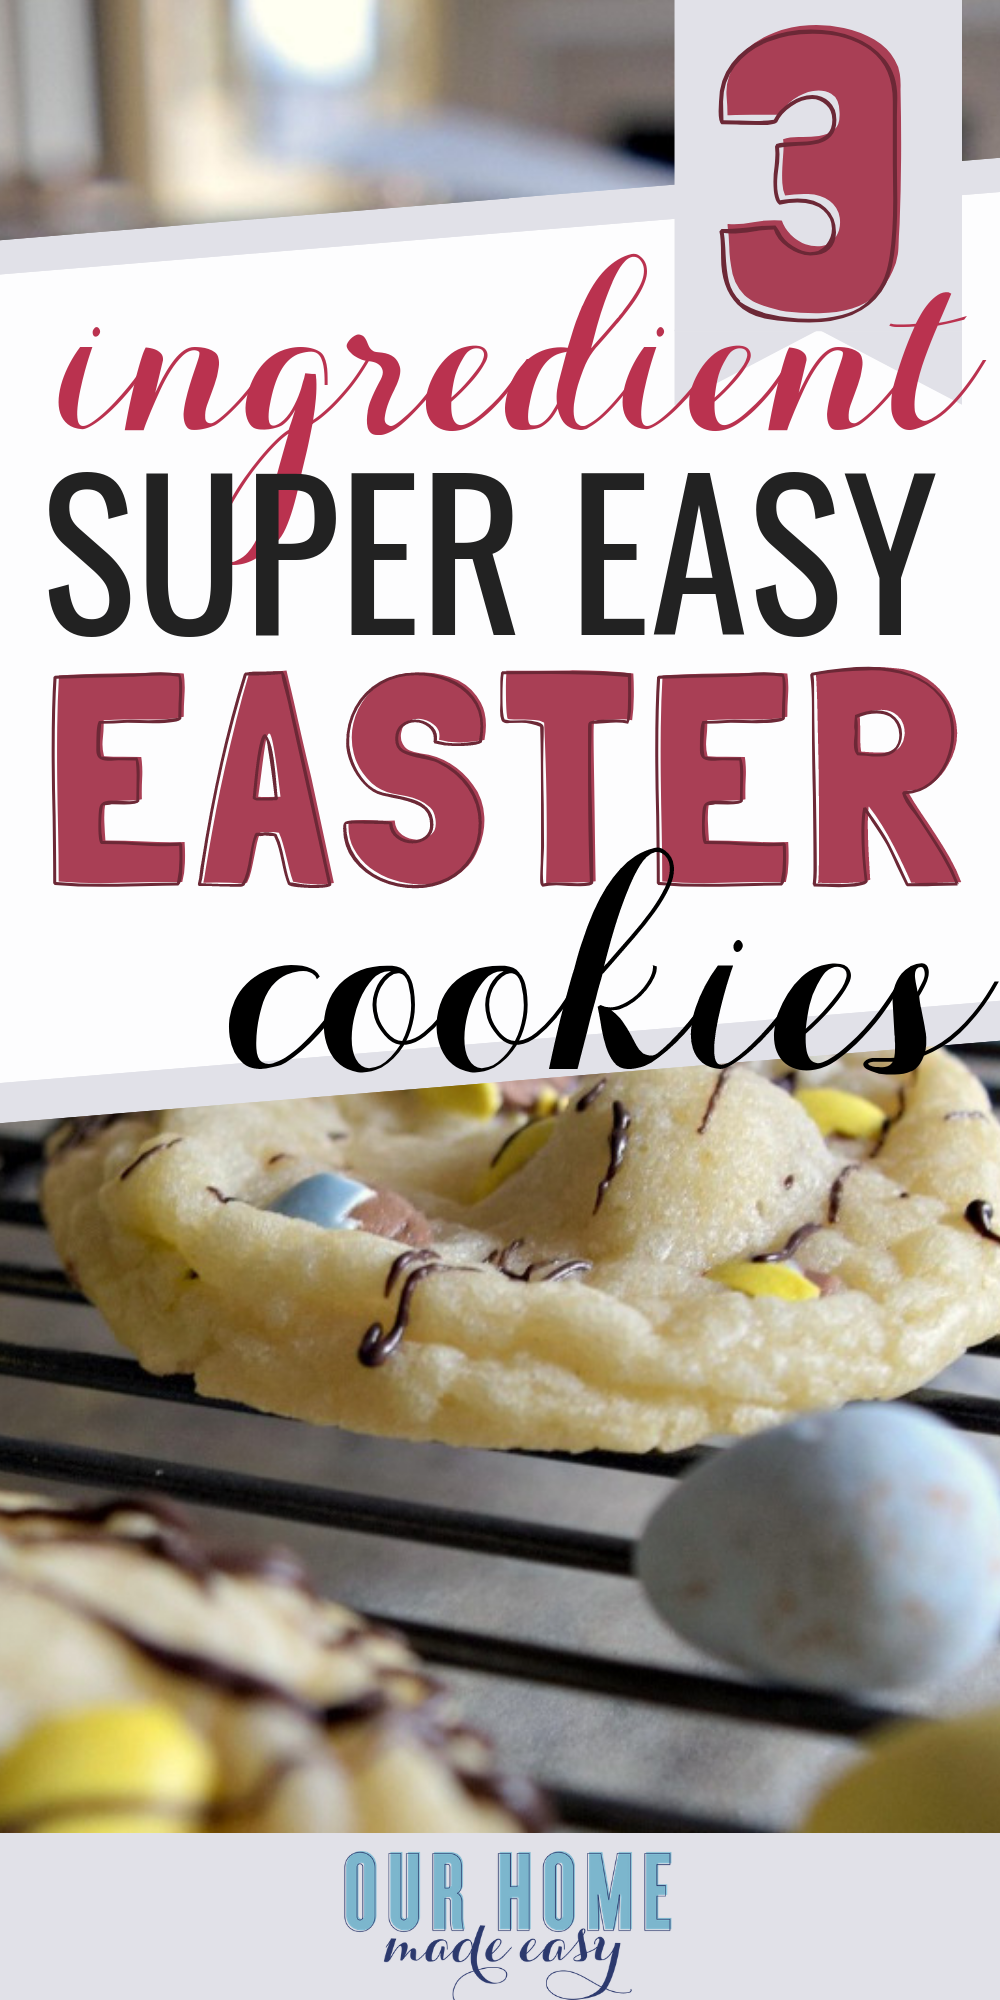 Make this easy Easter cookie recipe with only 3 ingredients! Busy mom win and you'll still get to make memories but without the effort! Click for recipe!